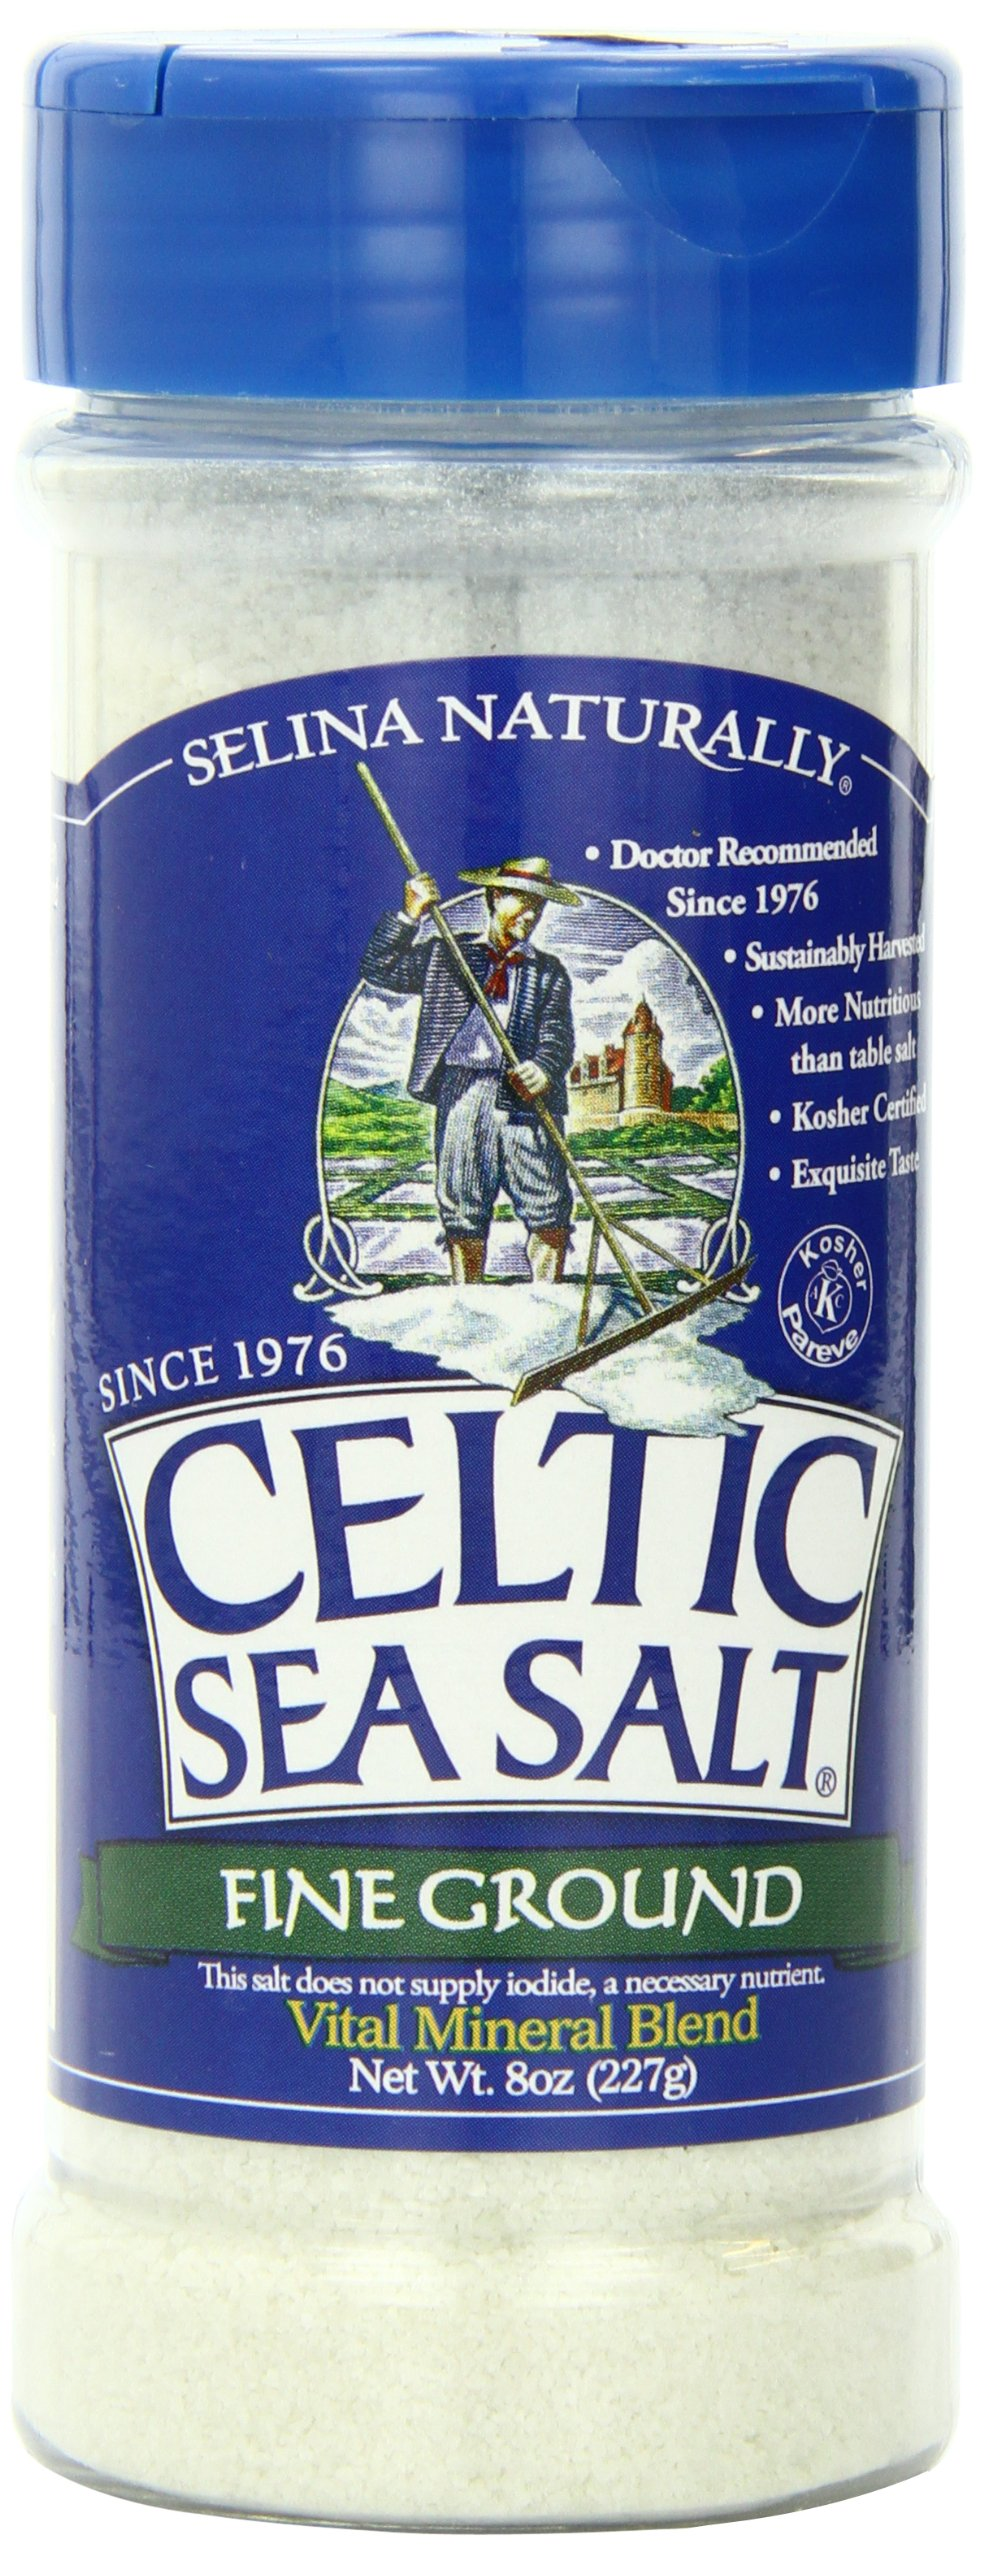 Fine Ground Celtic Sea Salt – (1) 8 Ounce Shaker Jar of Nutritious, Classic Sea Salt, Great for Cooking, Baking, Pickling, Finishing and More, Pantry-Friendly, Gluten-Free, Kosher and Paleo-Friendly